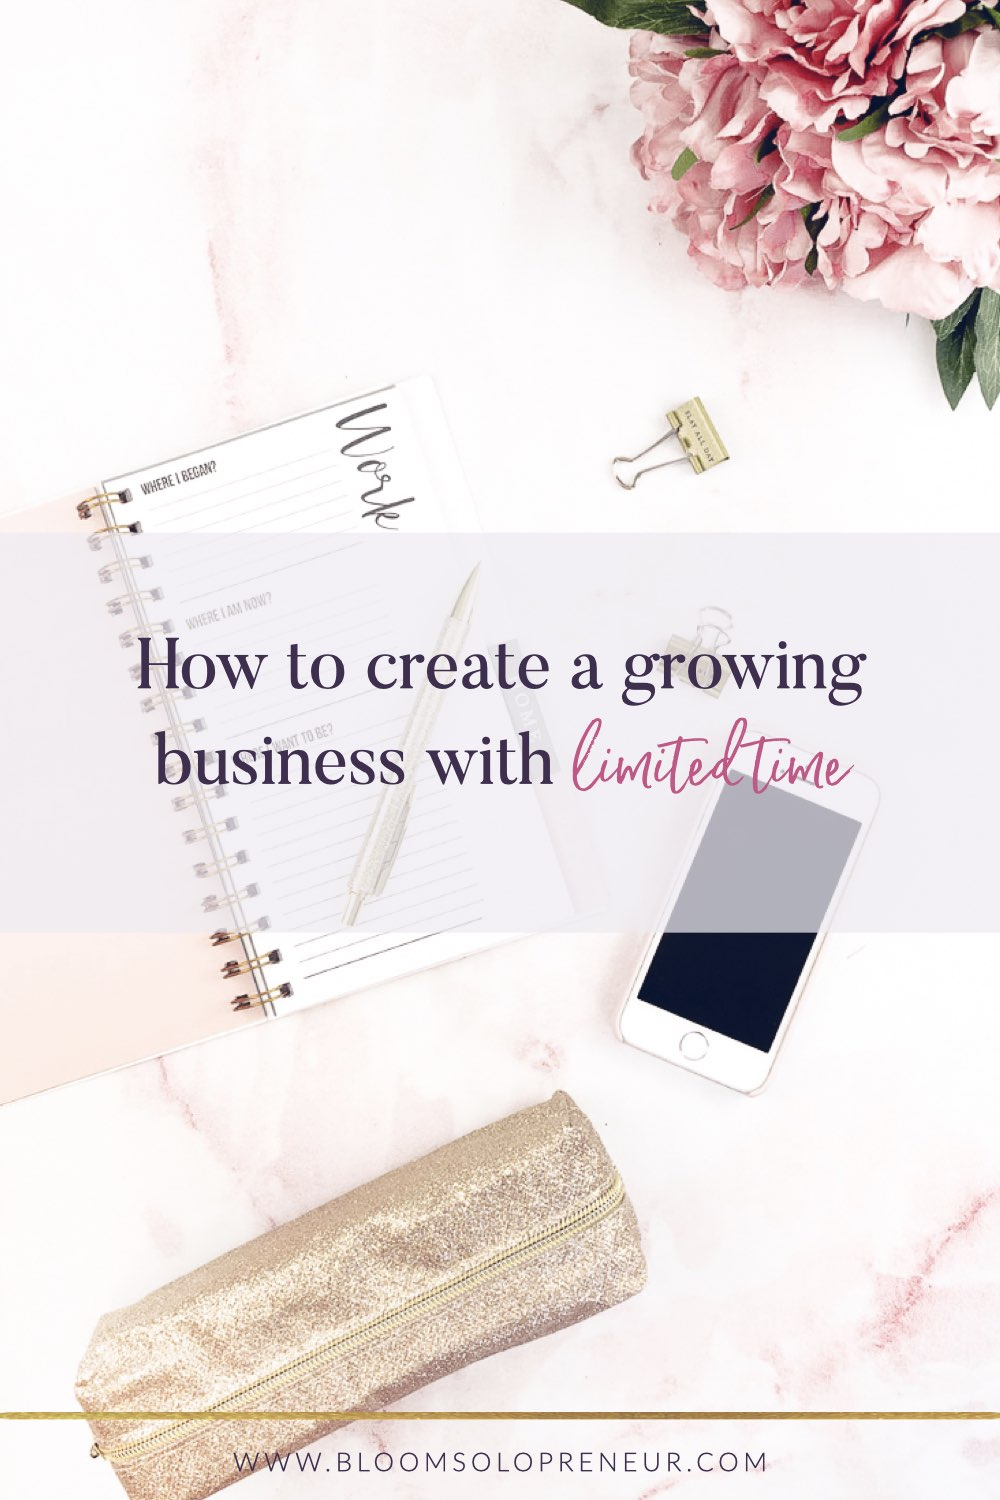 """If you are currently trying to create a growing business but you're also working a 9-5. Then you can probably relate to the struggle of """"How on earth do I make REAL progress when I have such a limited amount of time each day?!"""" Use our 7 step process to help you increase to start and grow your small business with limited time each day. Leading to a health, sustainable and growing business. #bloomsolopreneur"""